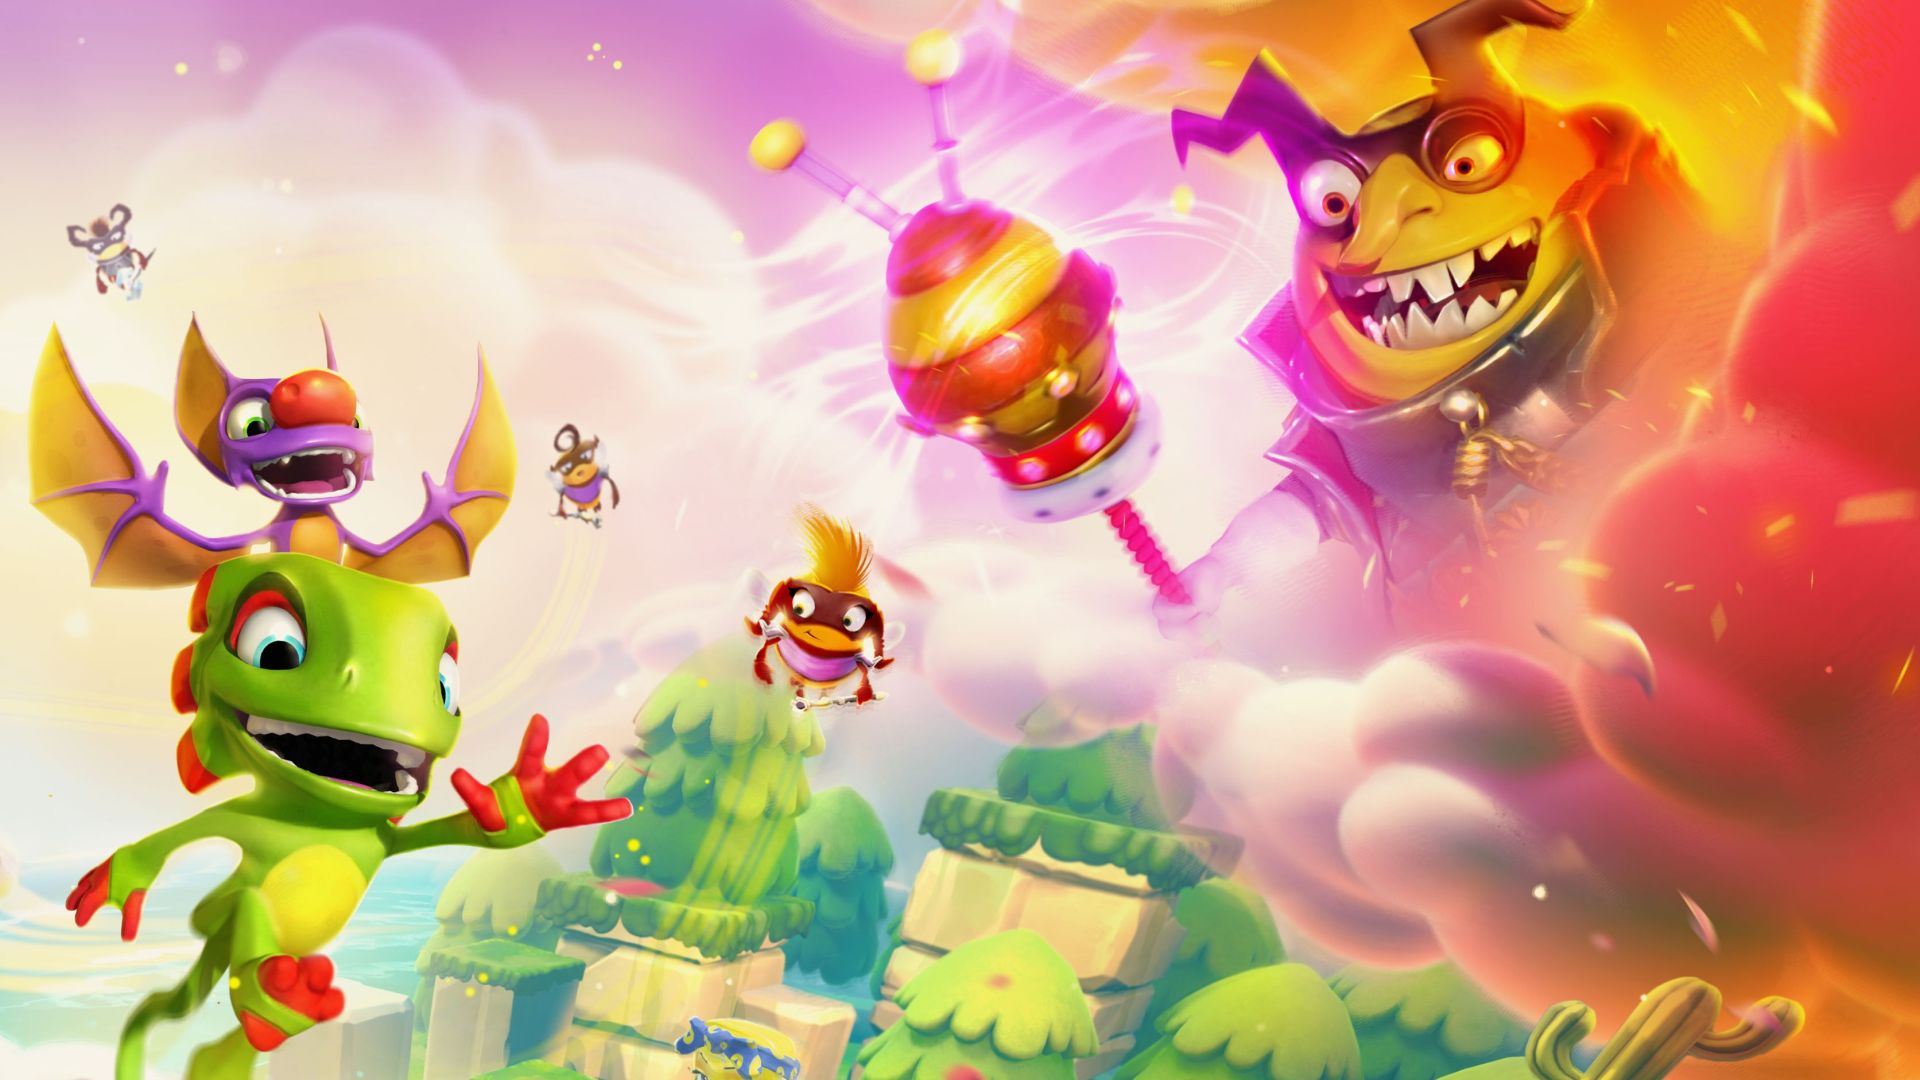 Yooka-Laylee and the Impossible Lair release date